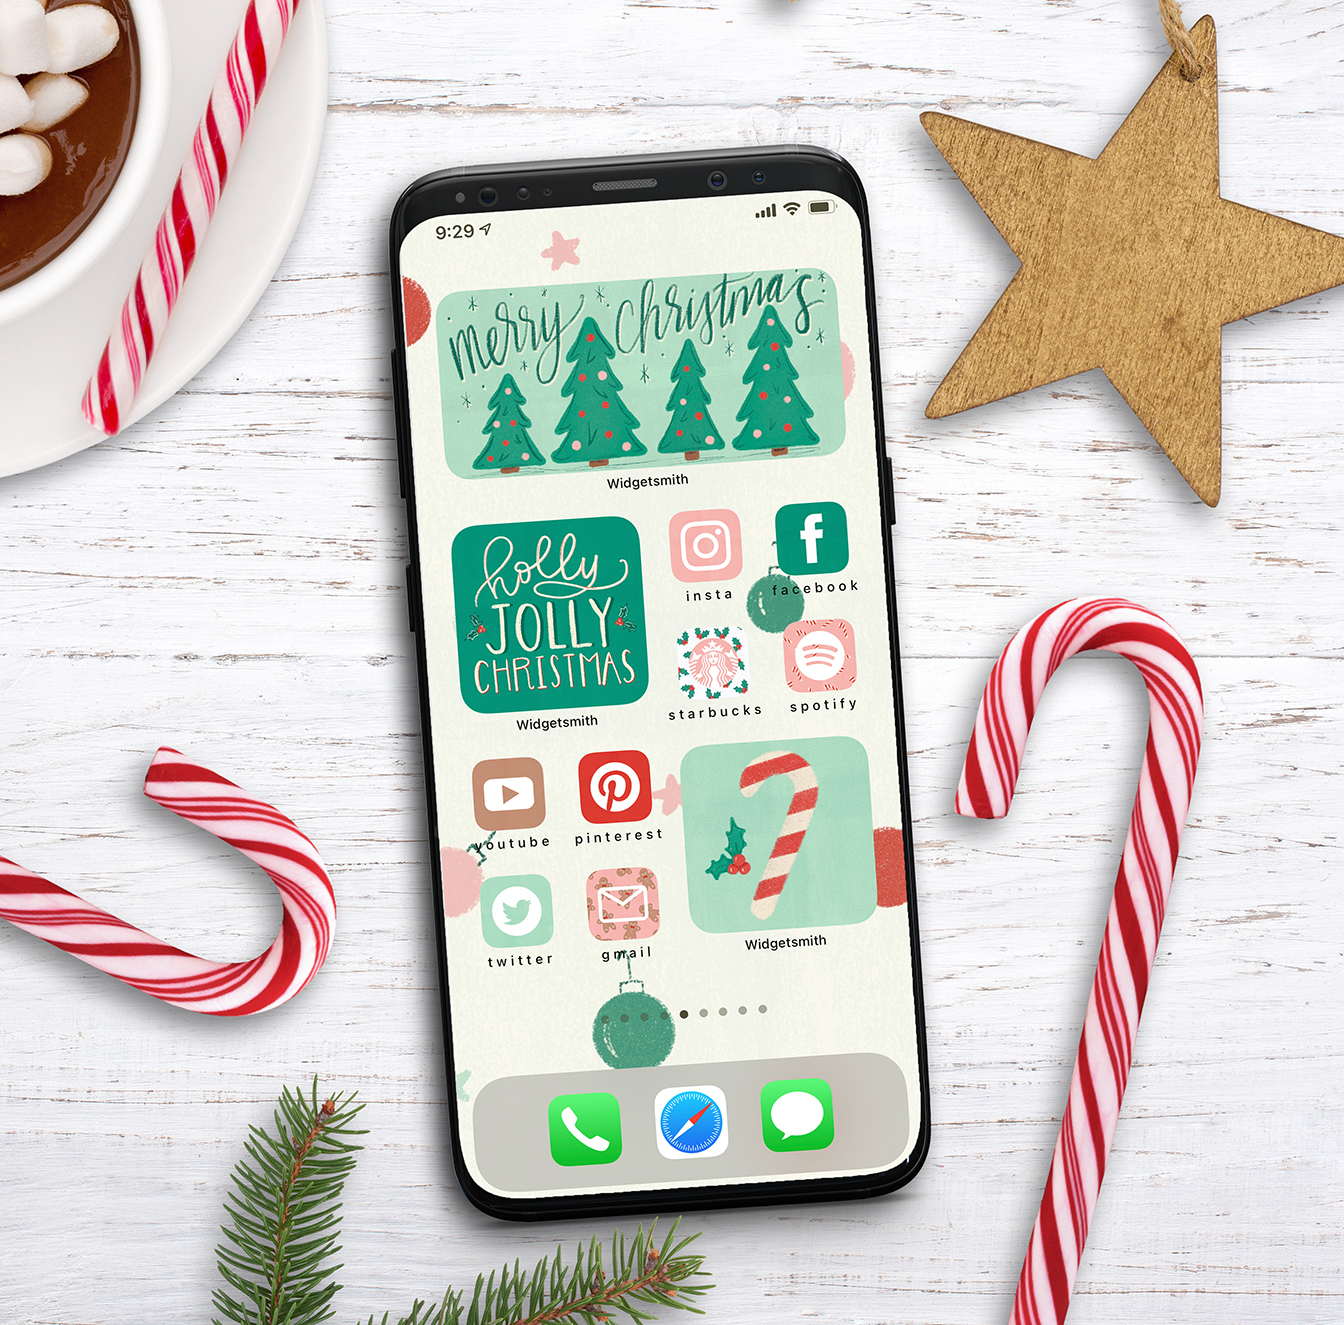 Free Ios Christmas Aesthetic Widget And App Icons